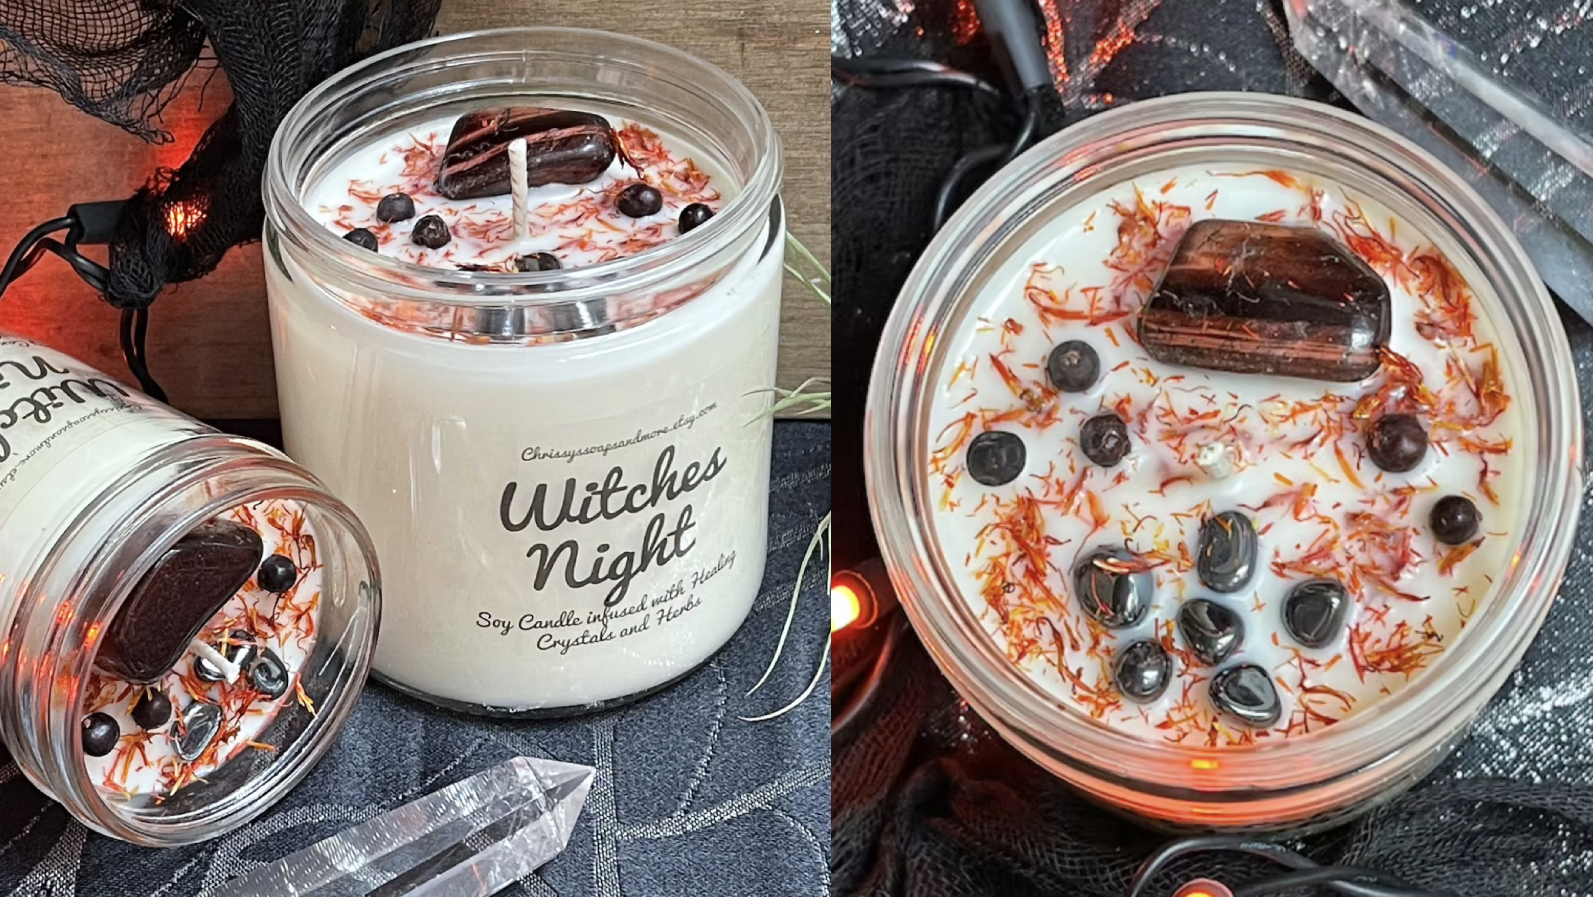 This Etsy candle is dotted with pretty crystals.